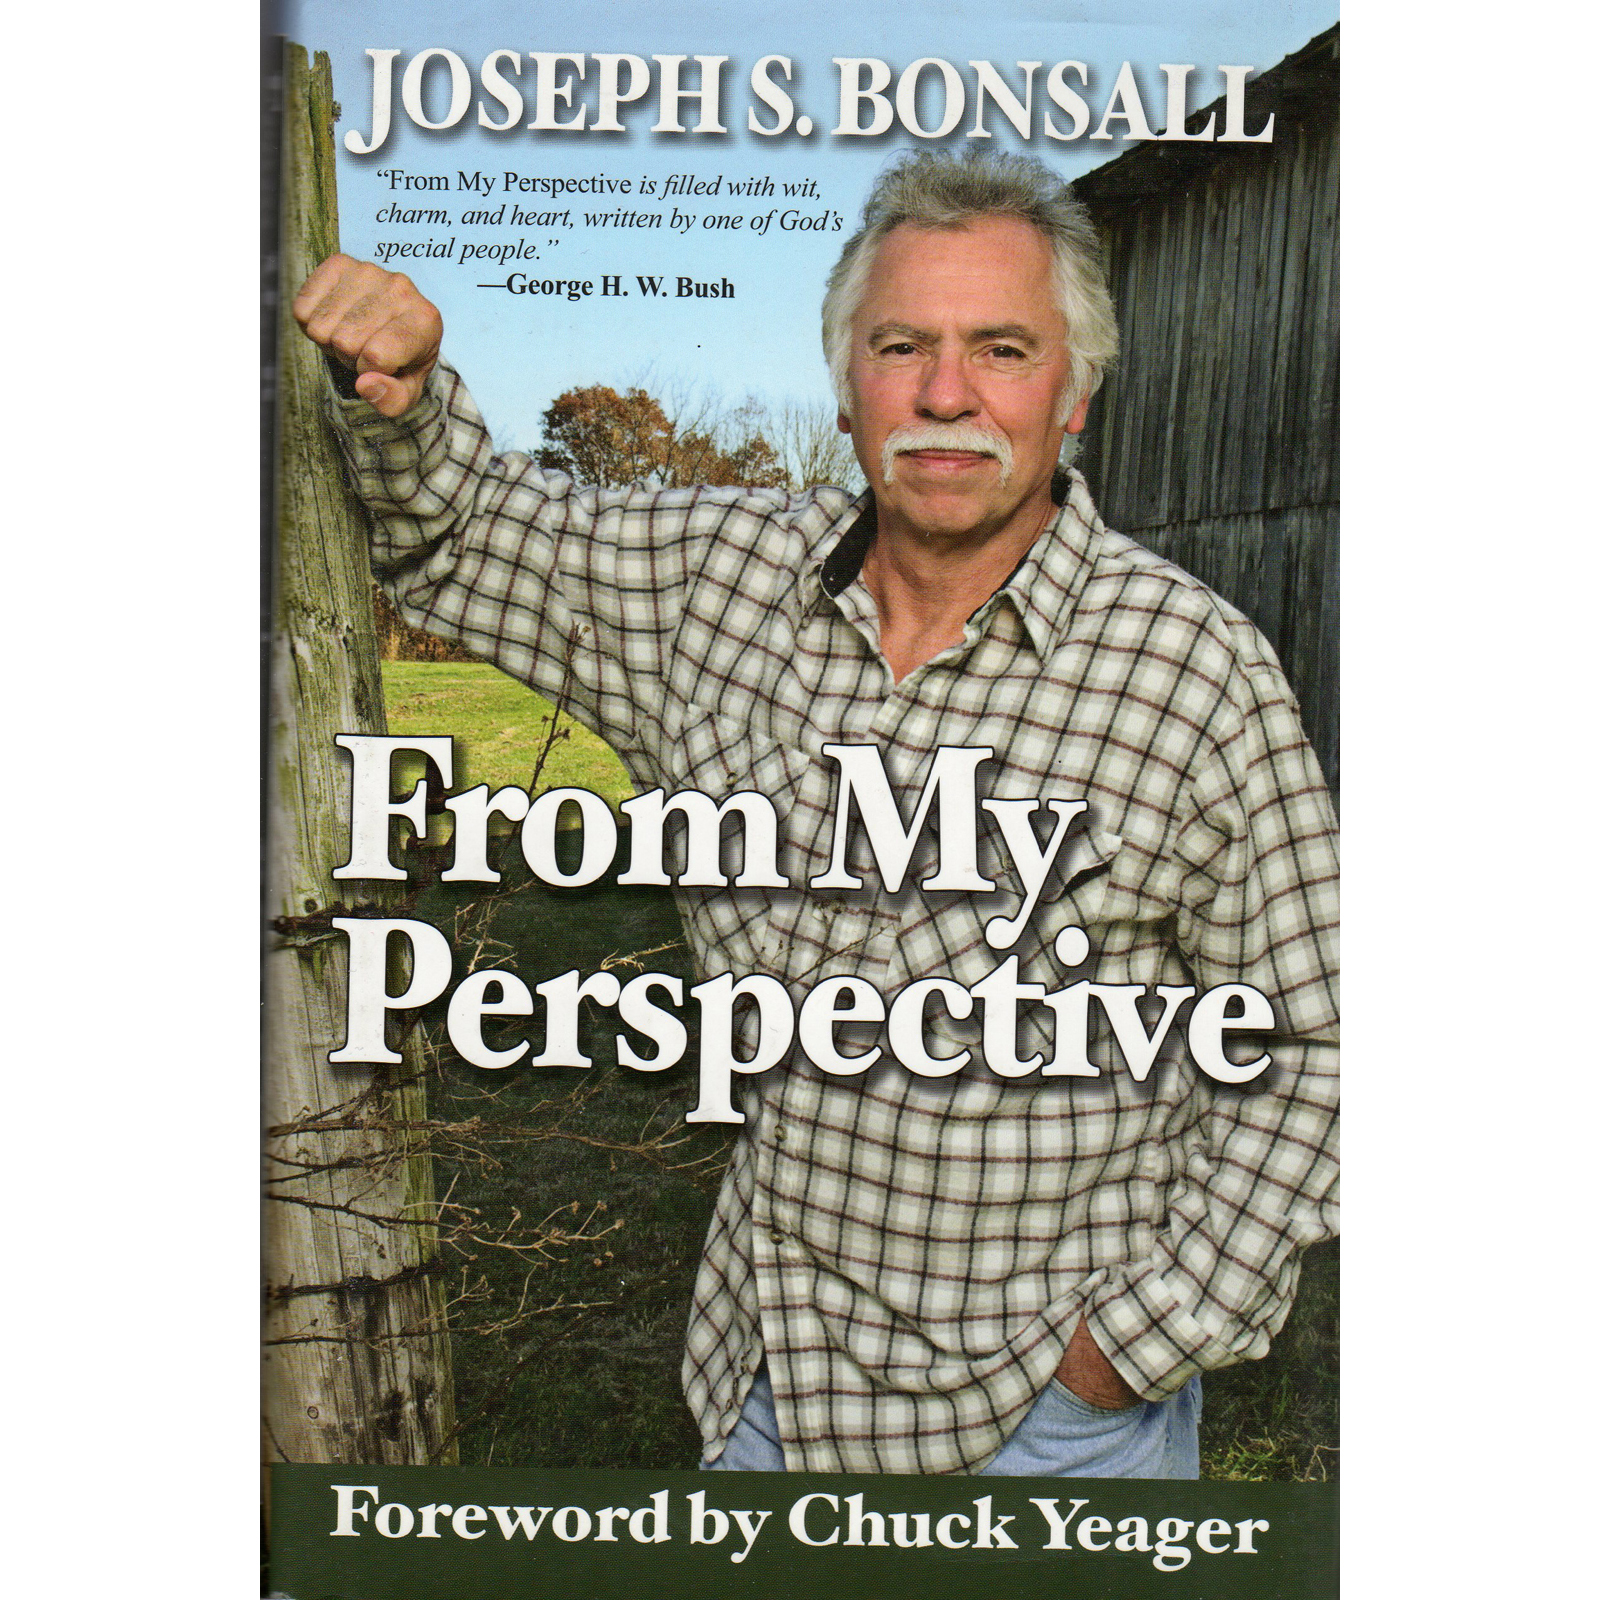 Joe Bonsall JOSEPH S BONSALL From My Perspective Book Autographed Signed Star